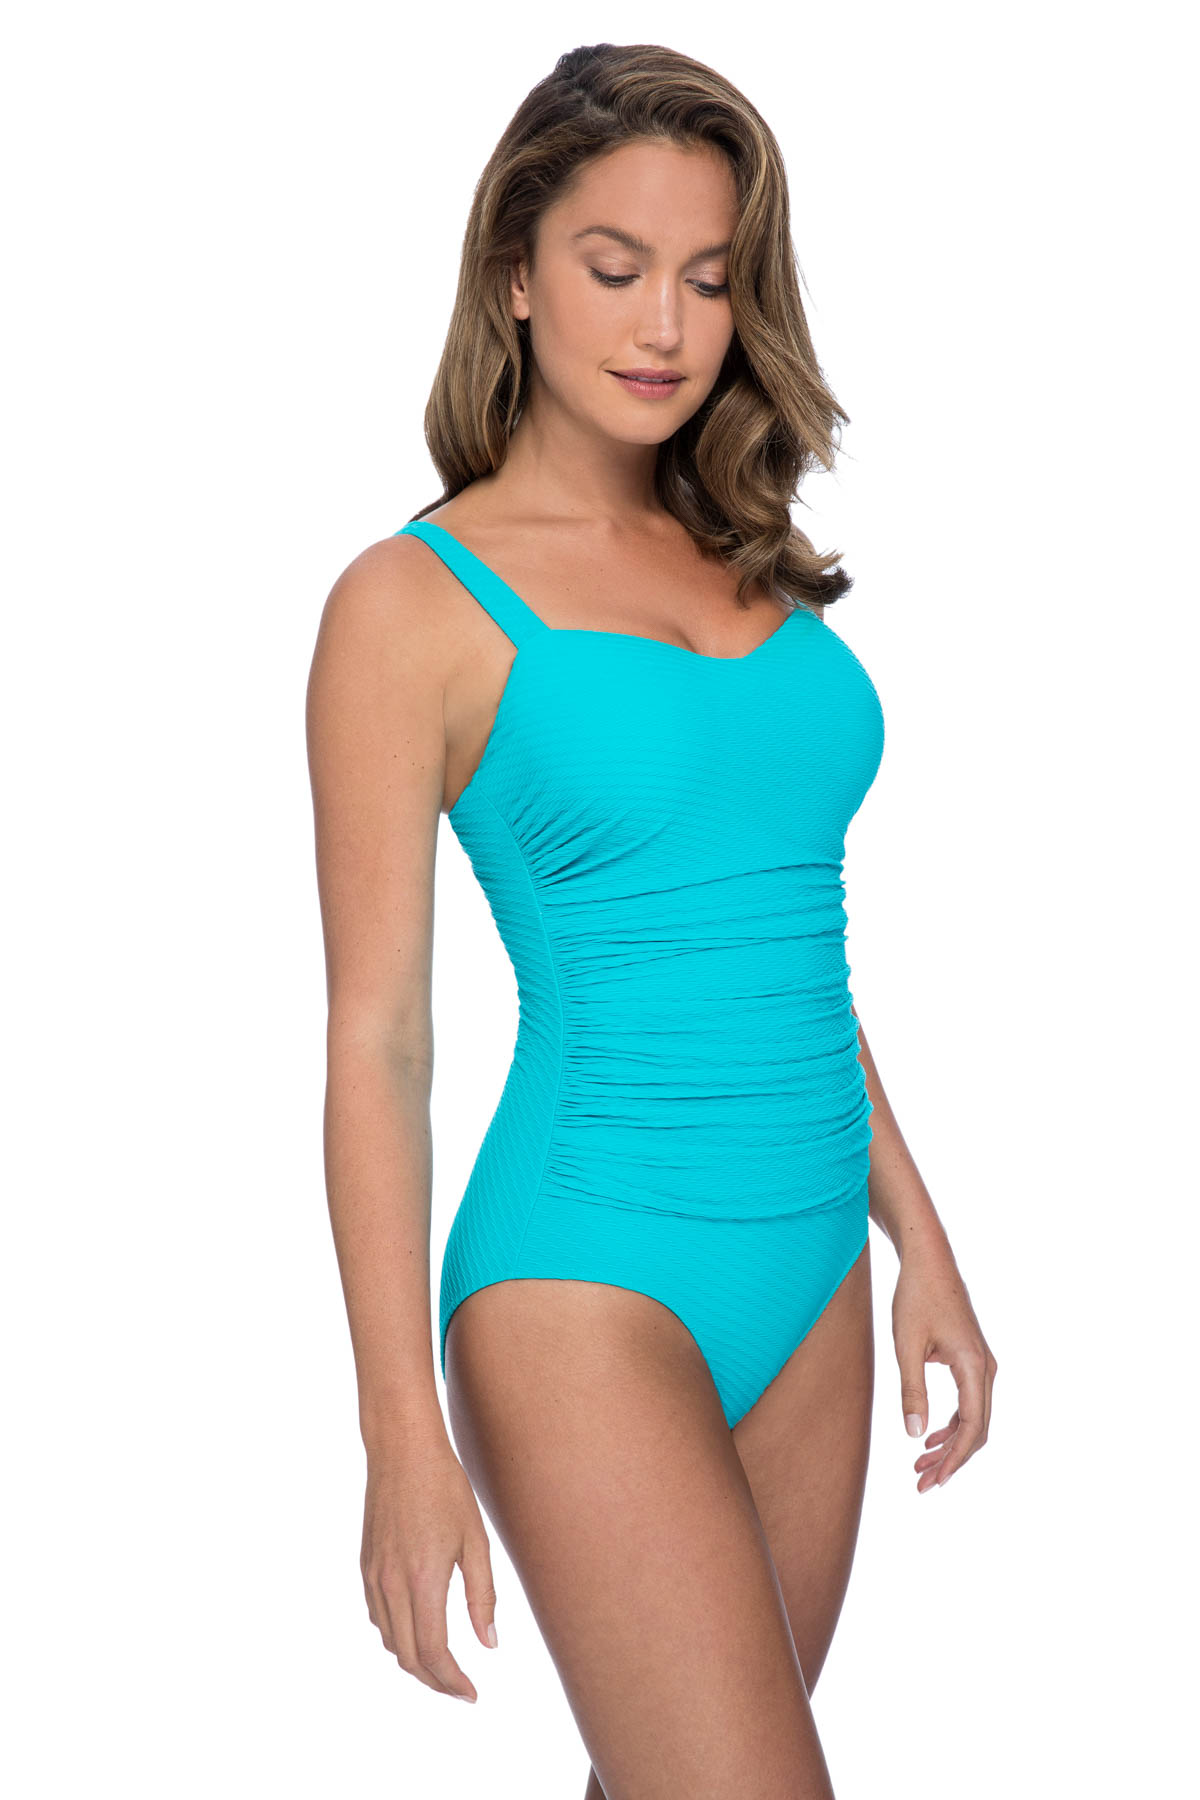 Lingerie Strap One Piece Swimsuit (D Cup) - Turquoise 2